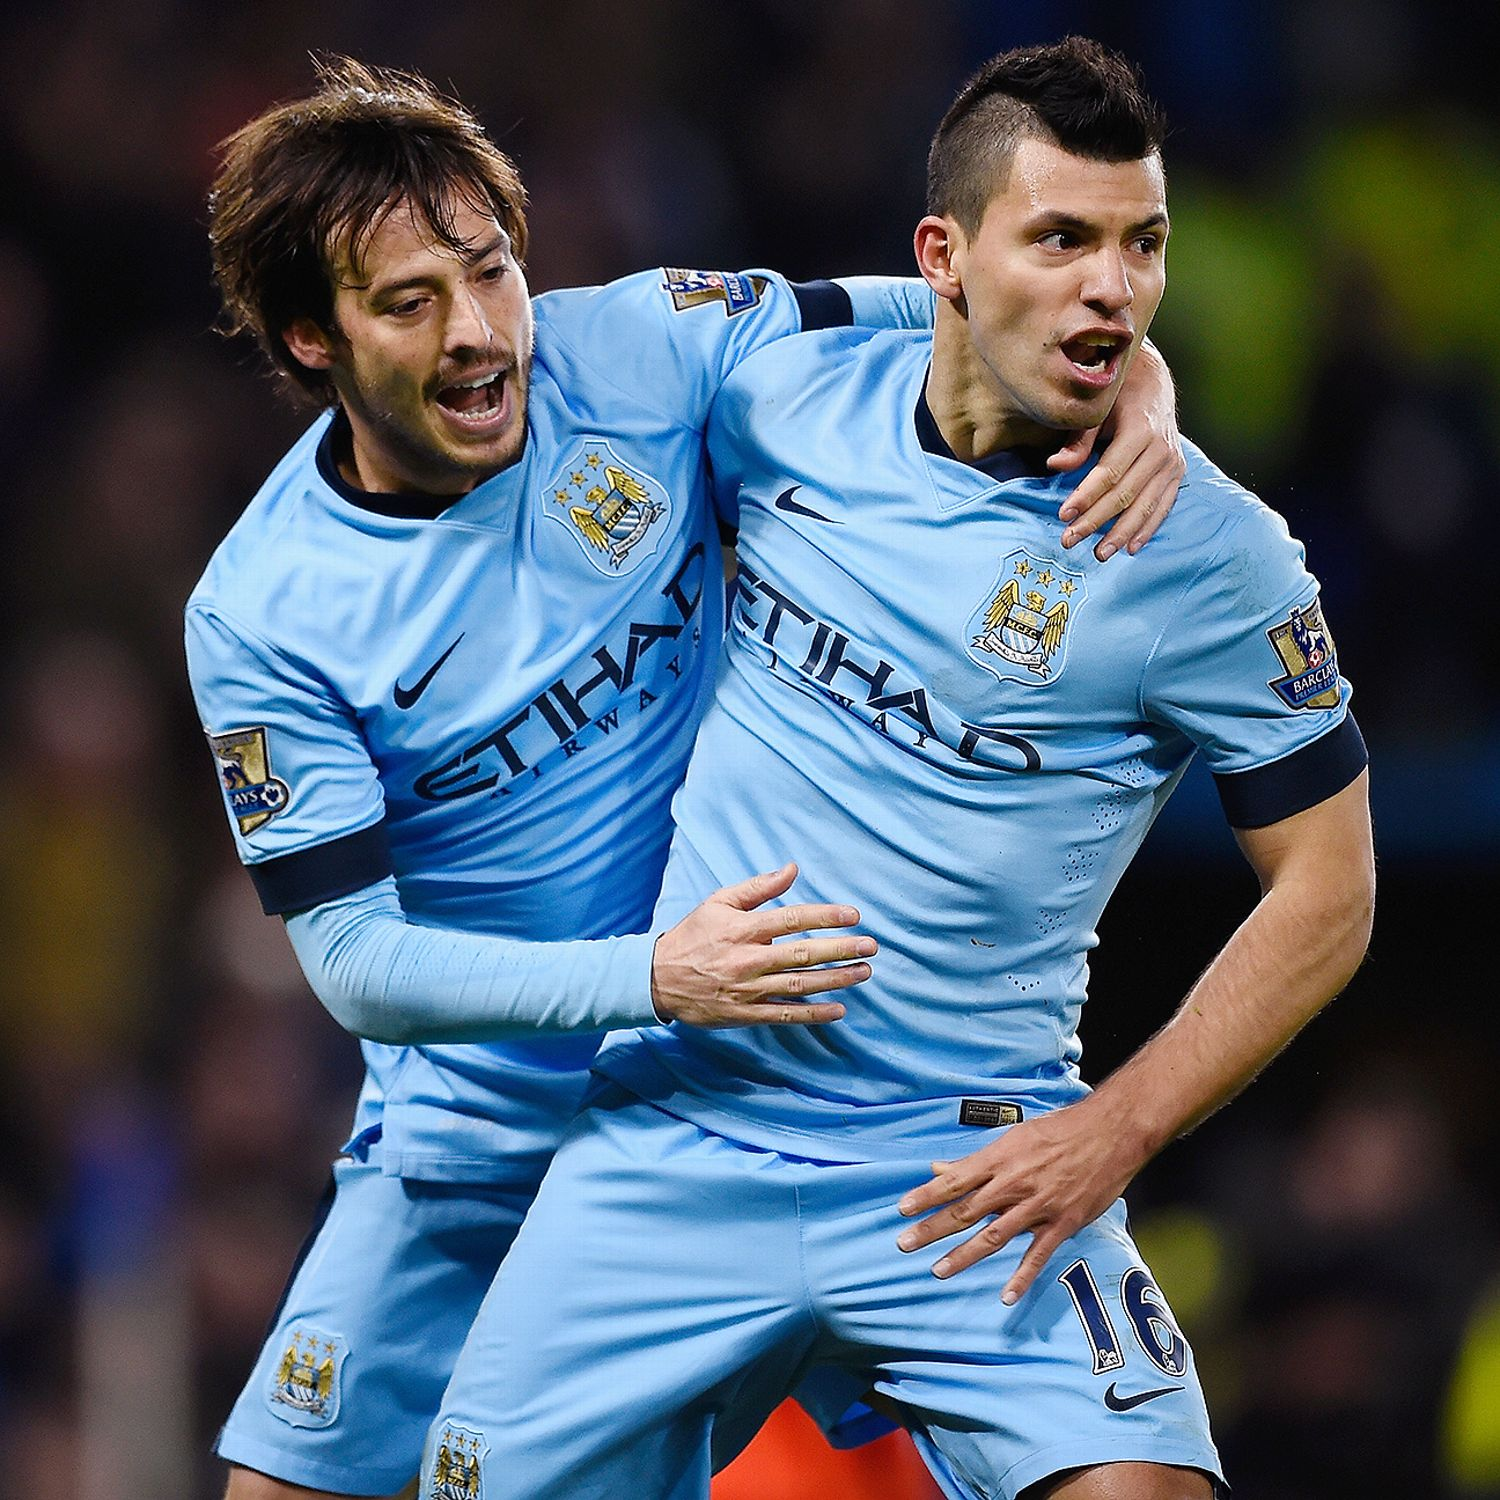 Epl Matches Live On Rcti Indonesia Tv Channel: Man City Woe As Sergio Aguero Samir Nasri David Silva Ill